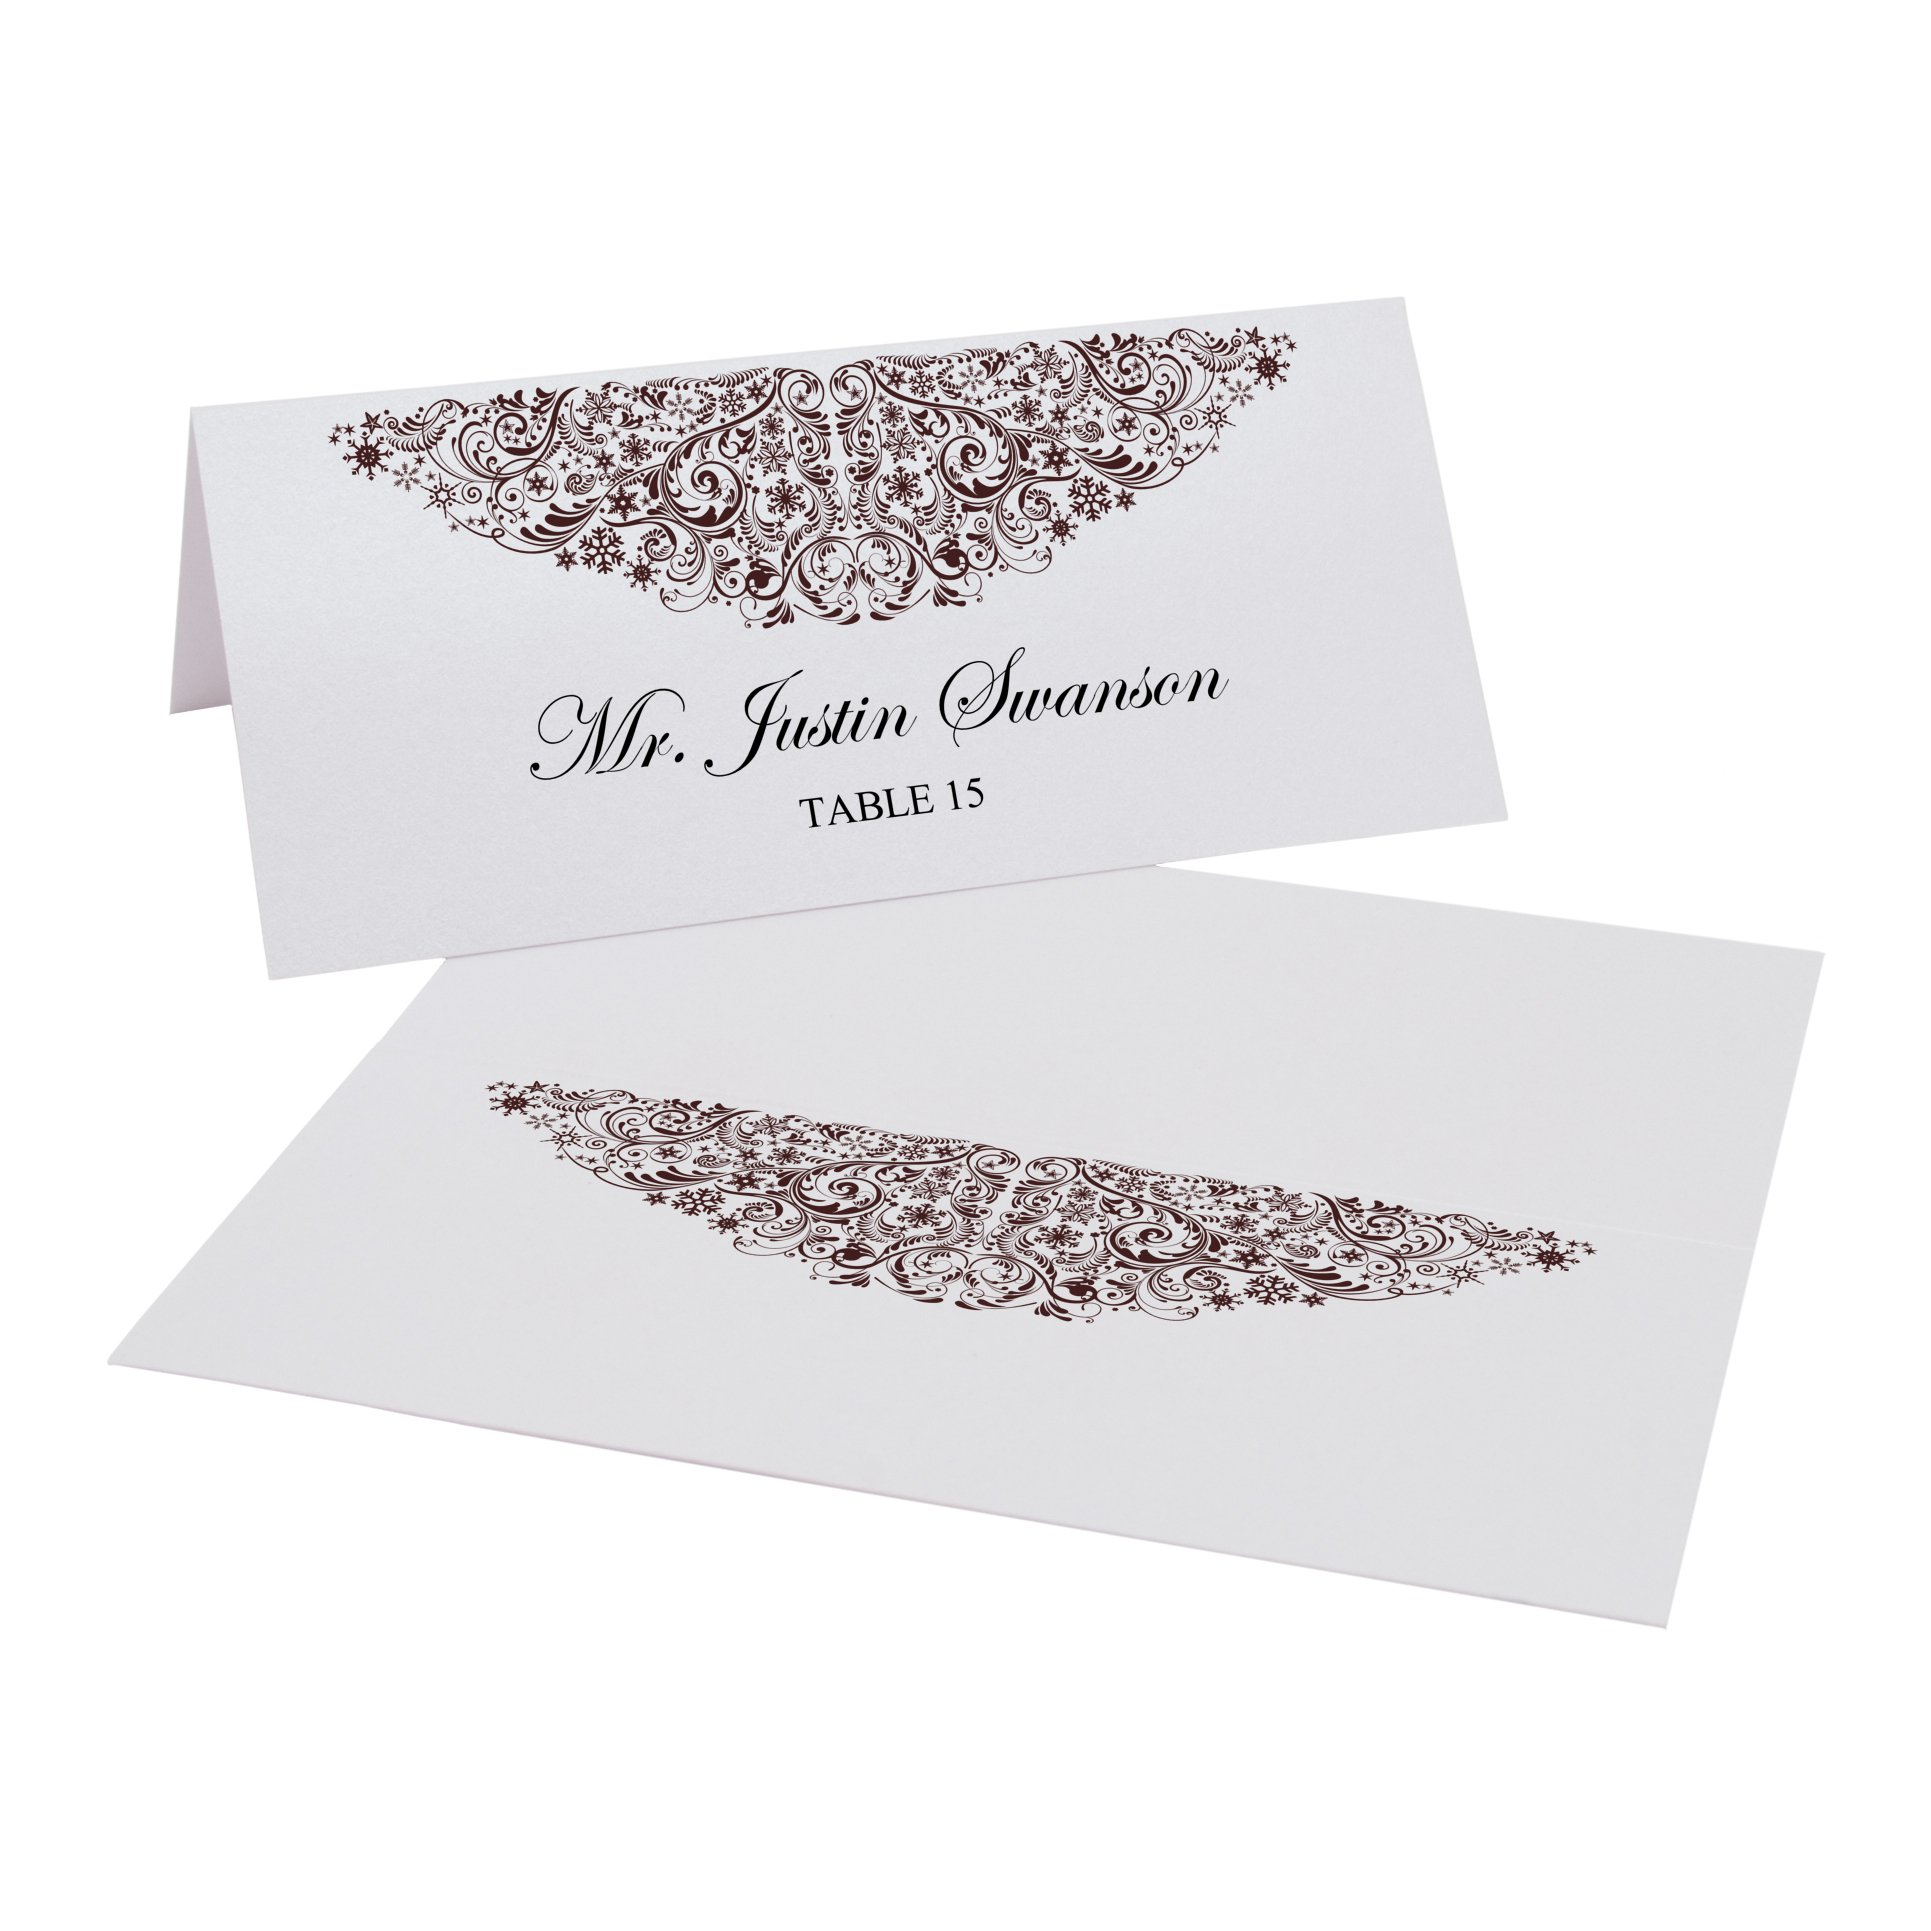 Vintage Snowflake Flourish Place Cards, Pearl White, Chocolate, Set of 375 by Documents and Designs